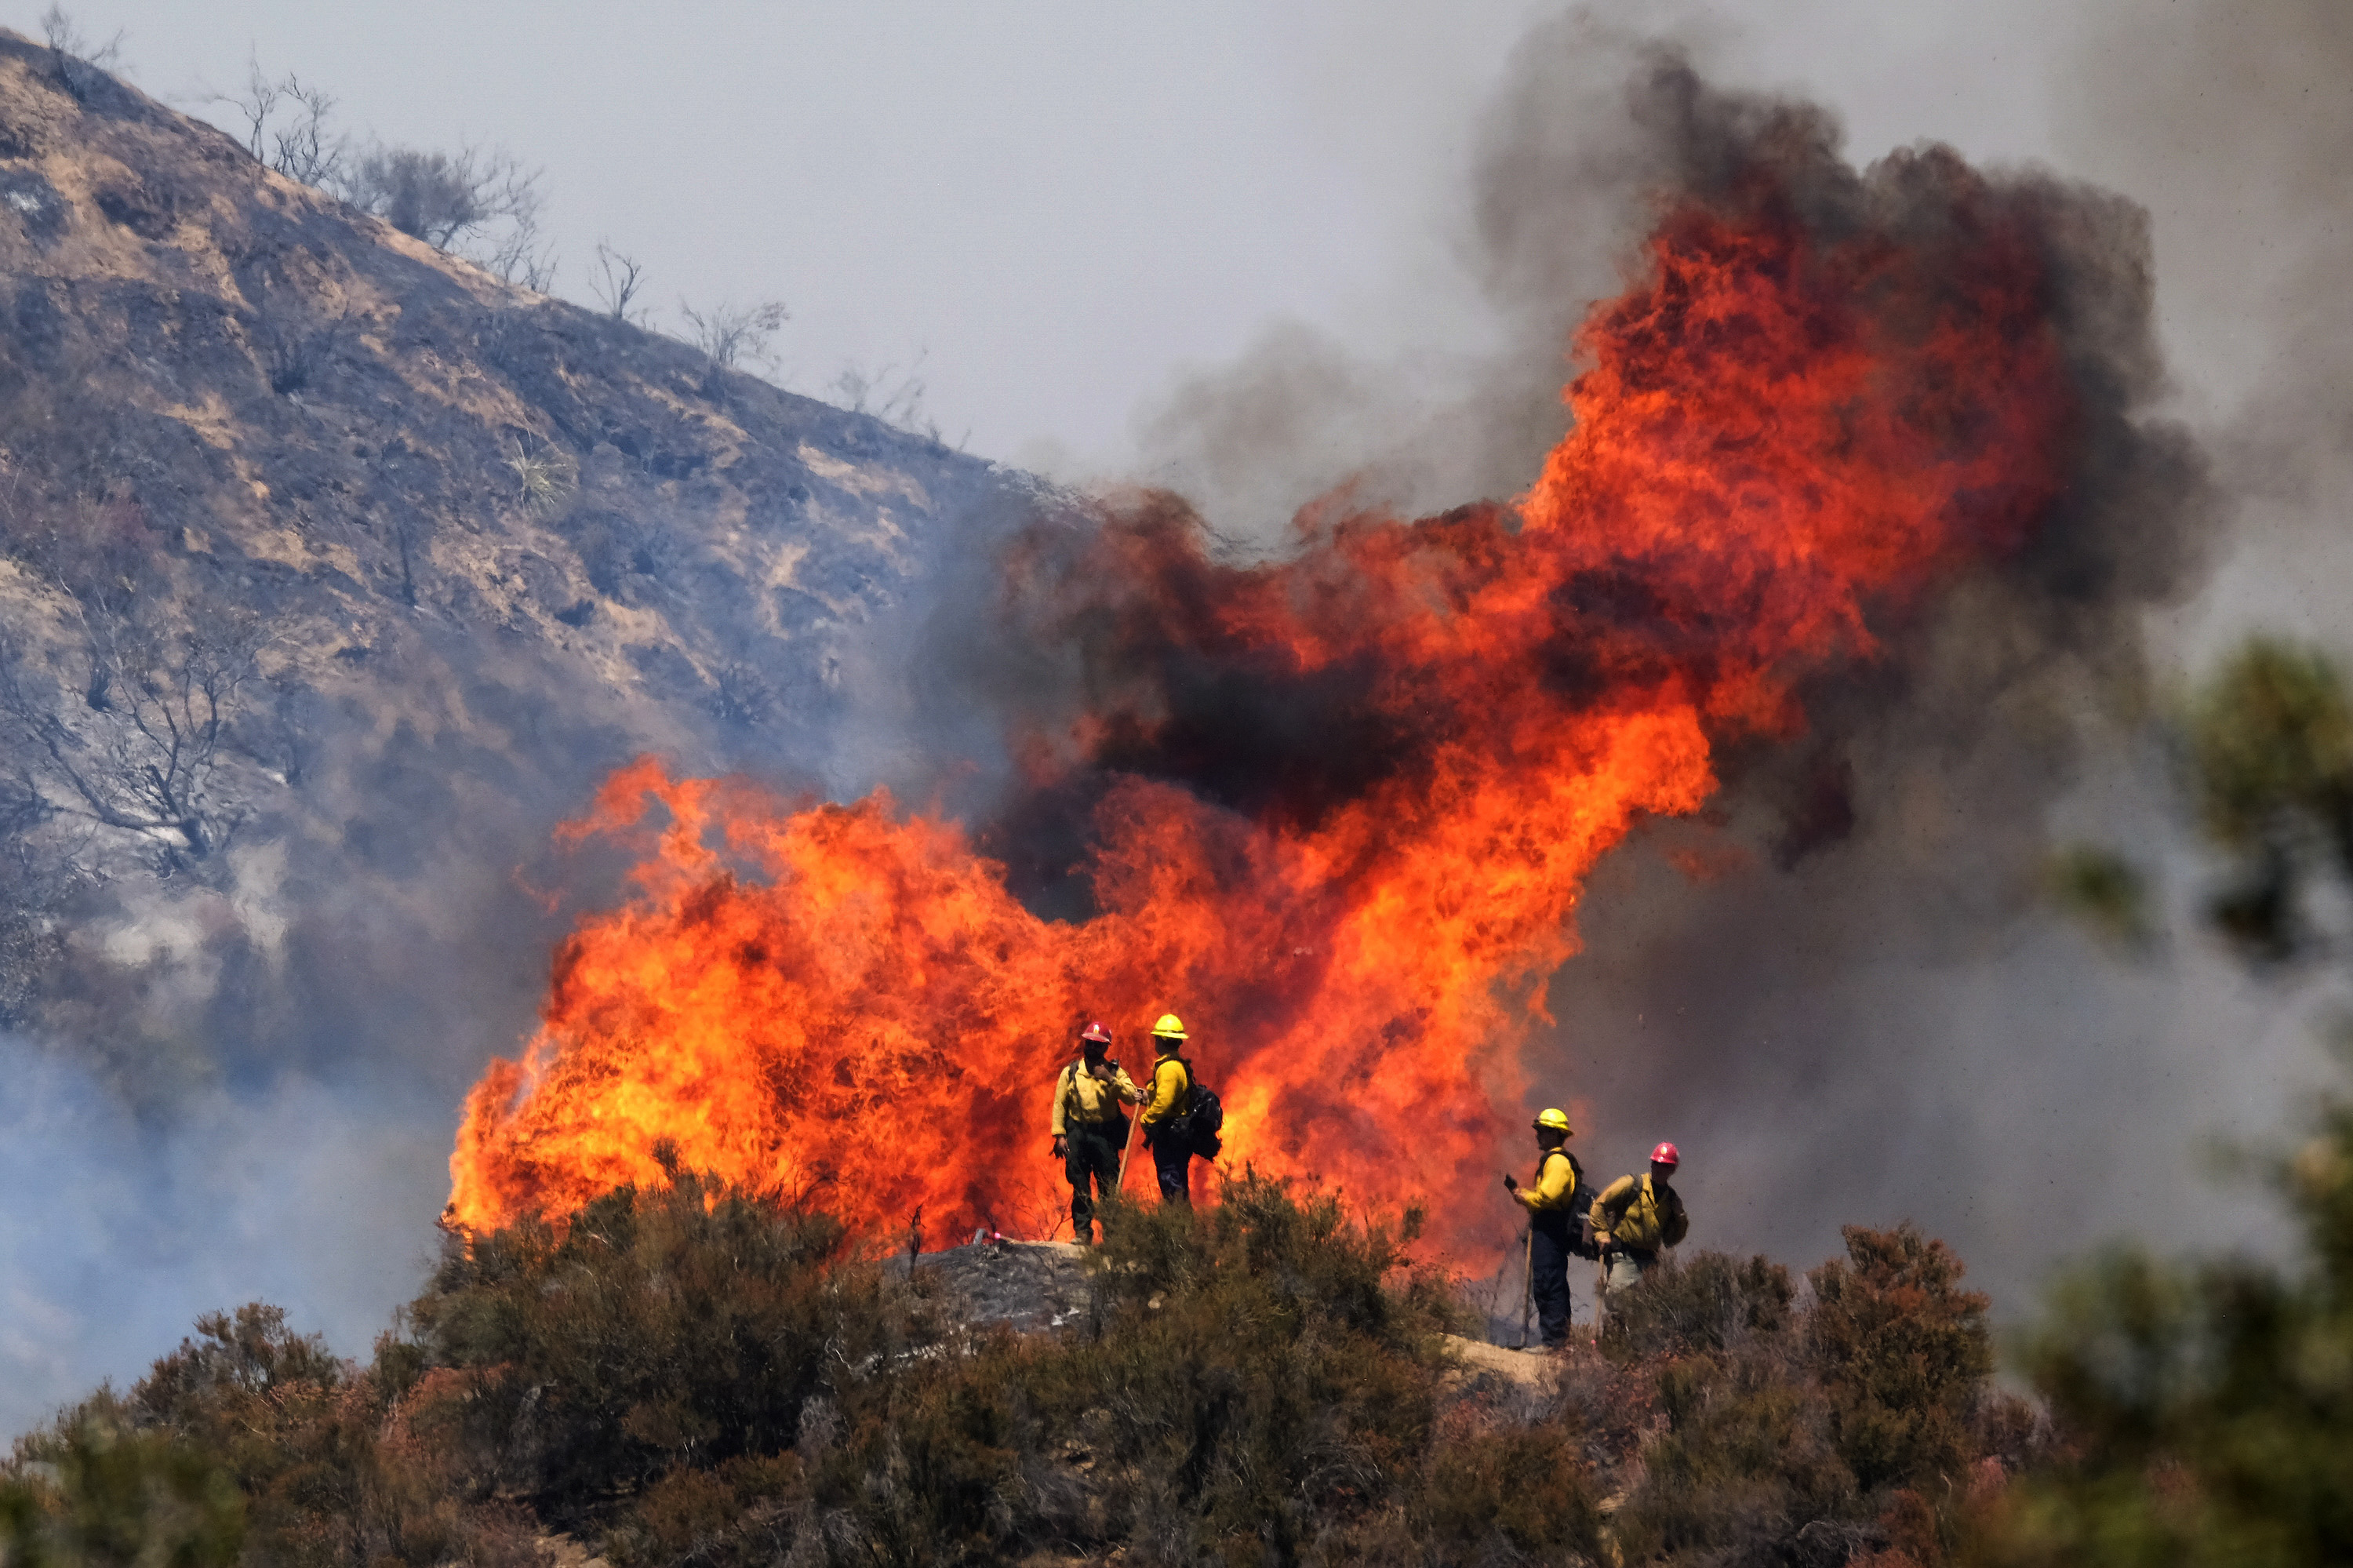 California's Apple Fire has grown to more than 20,000 acres and is 5% contained